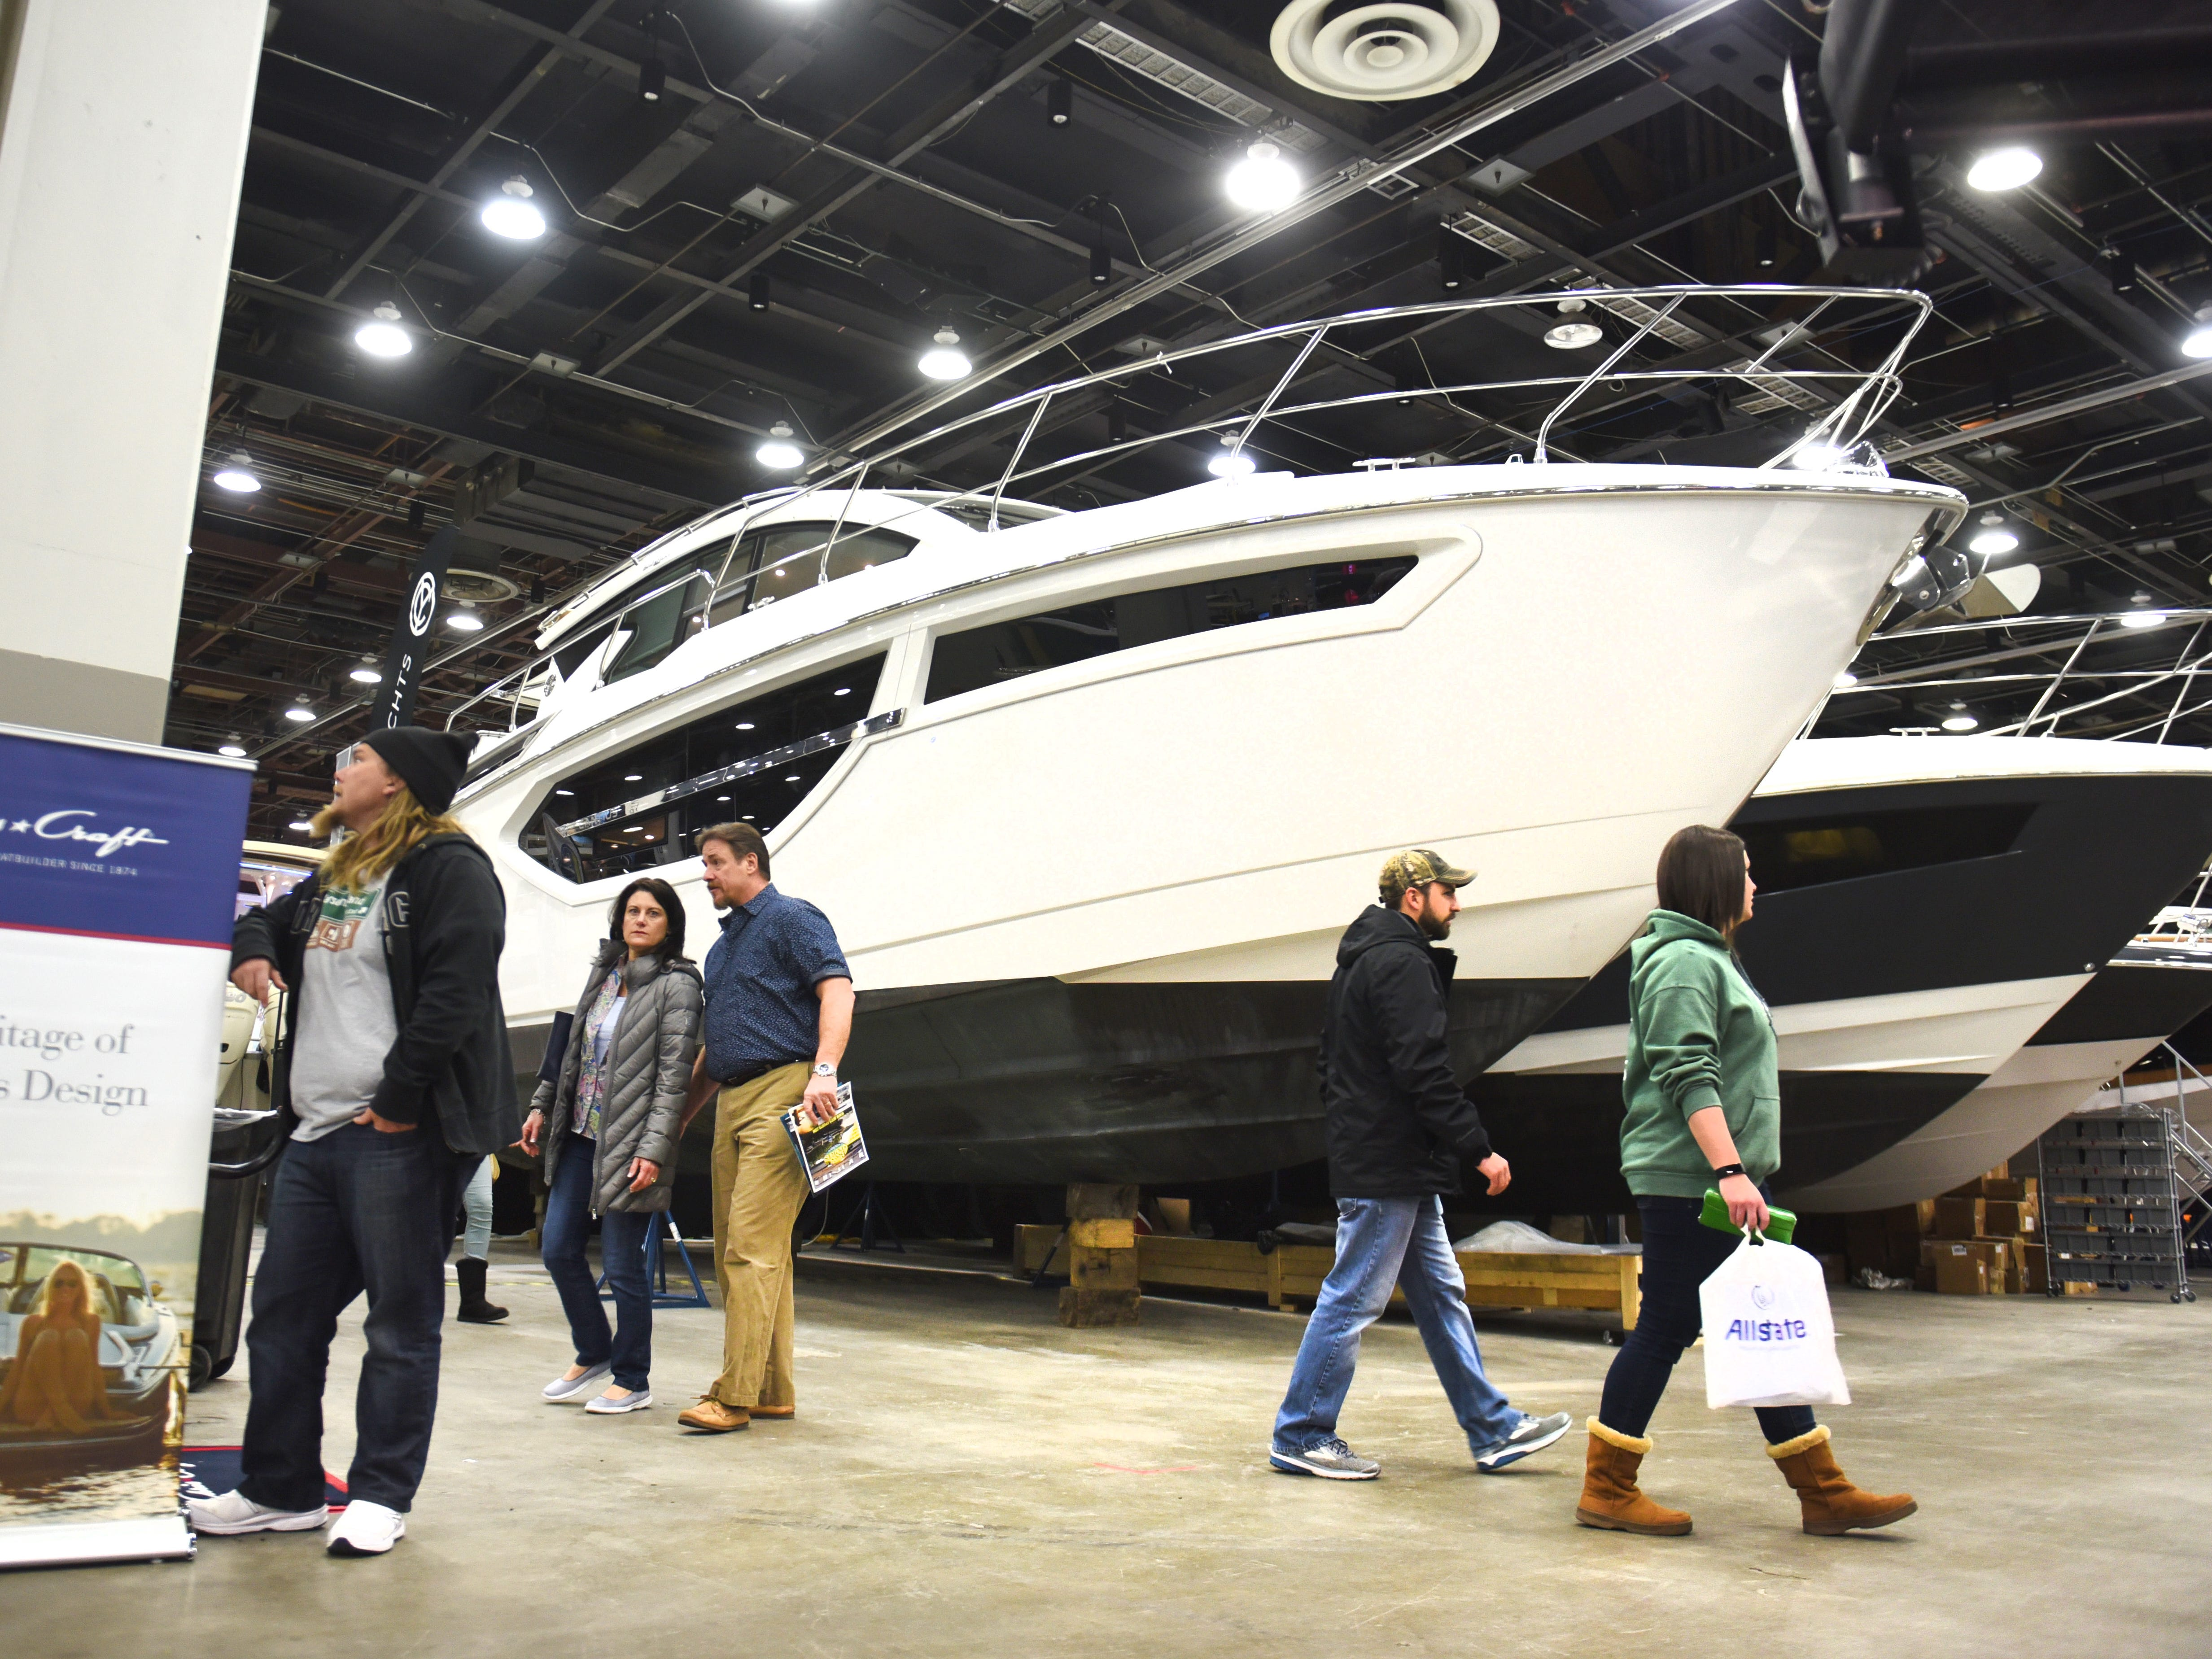 People walk passed a Skiipper Bud's  2019 42 Cantius Cruiser Yacht at the Detroit Boat Show at Cobo Center on Saturday, February 16, 2018.